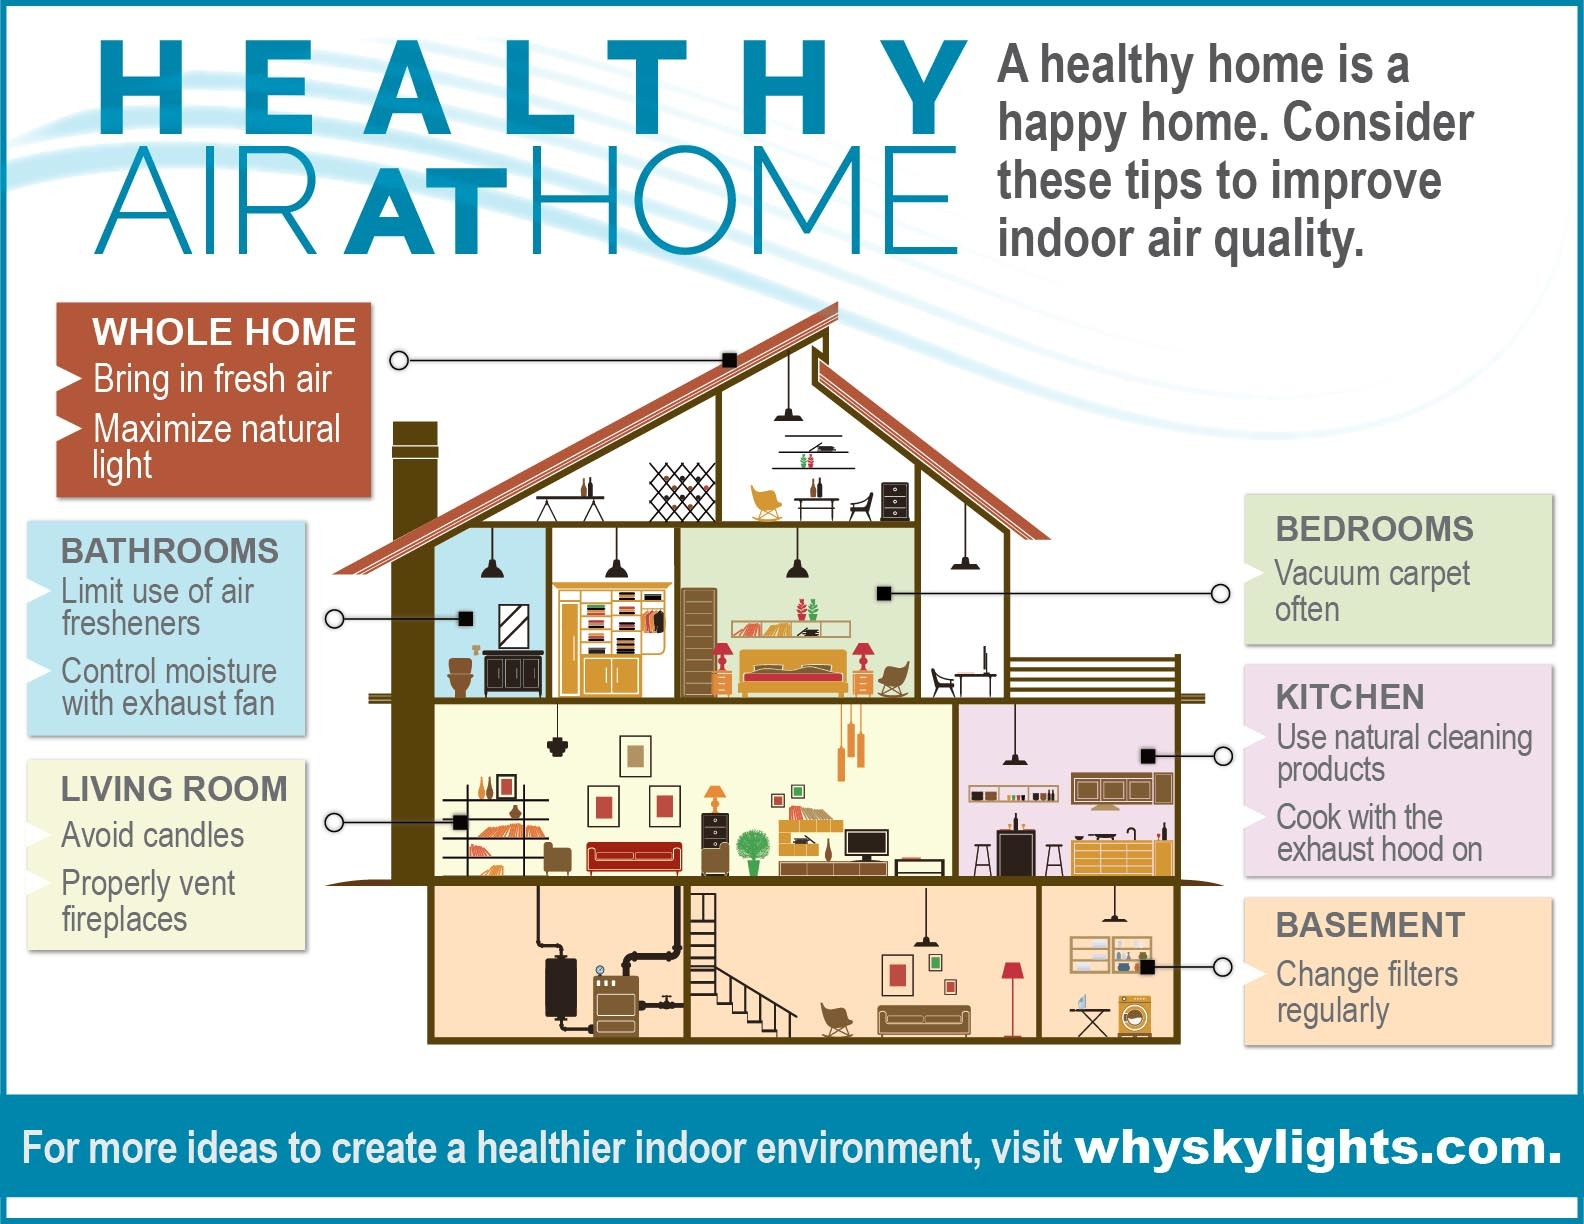 Tips for healthier Air At Home infographic